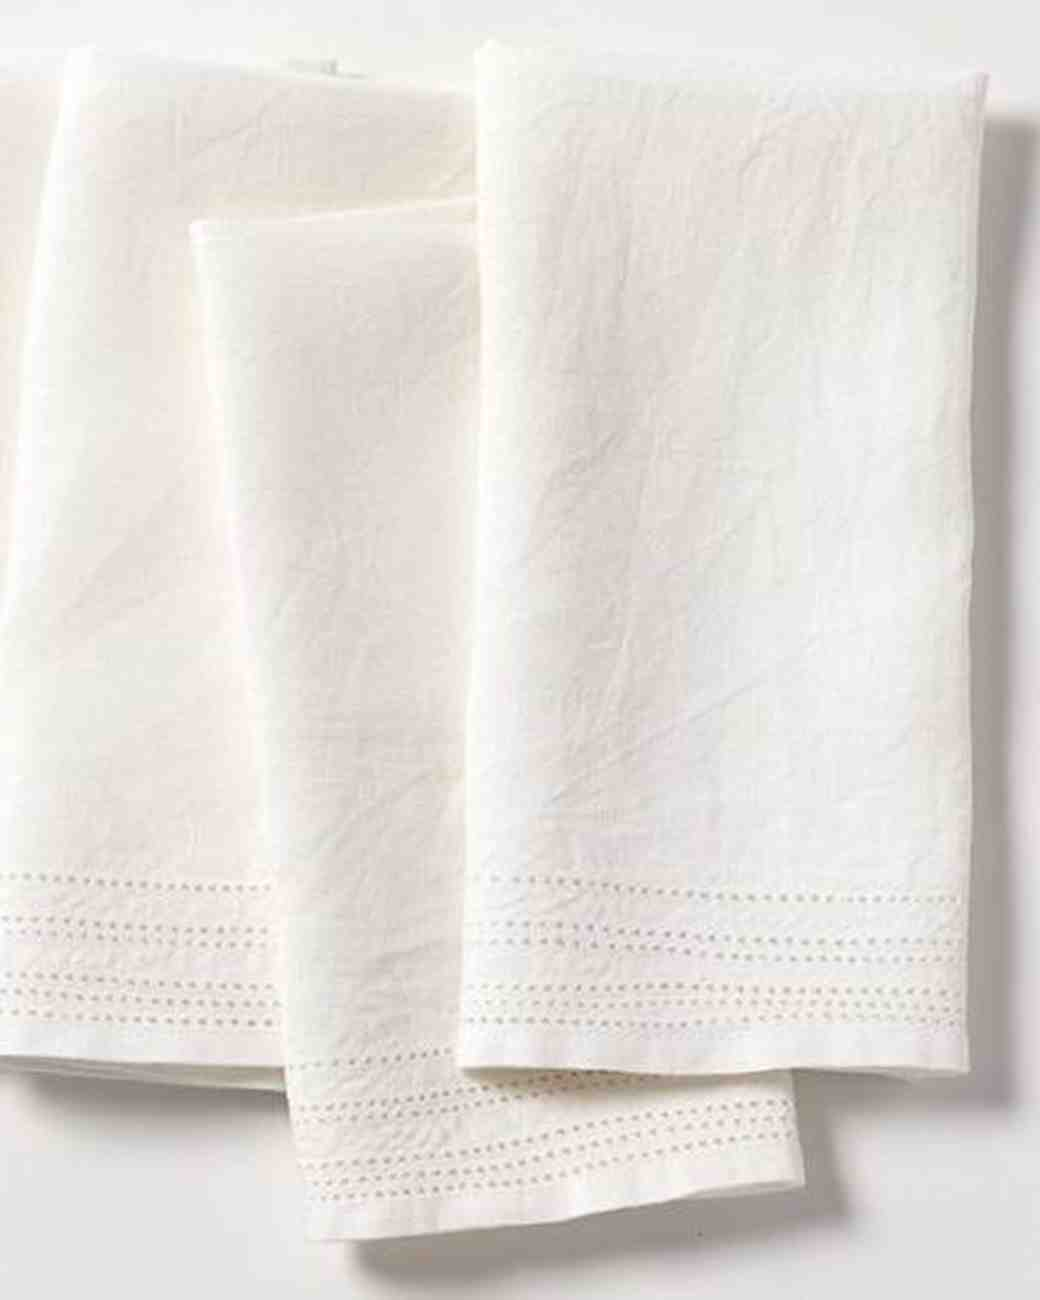 Linen Wedding Anniversary Gifts, Eyelet Linen Napkins